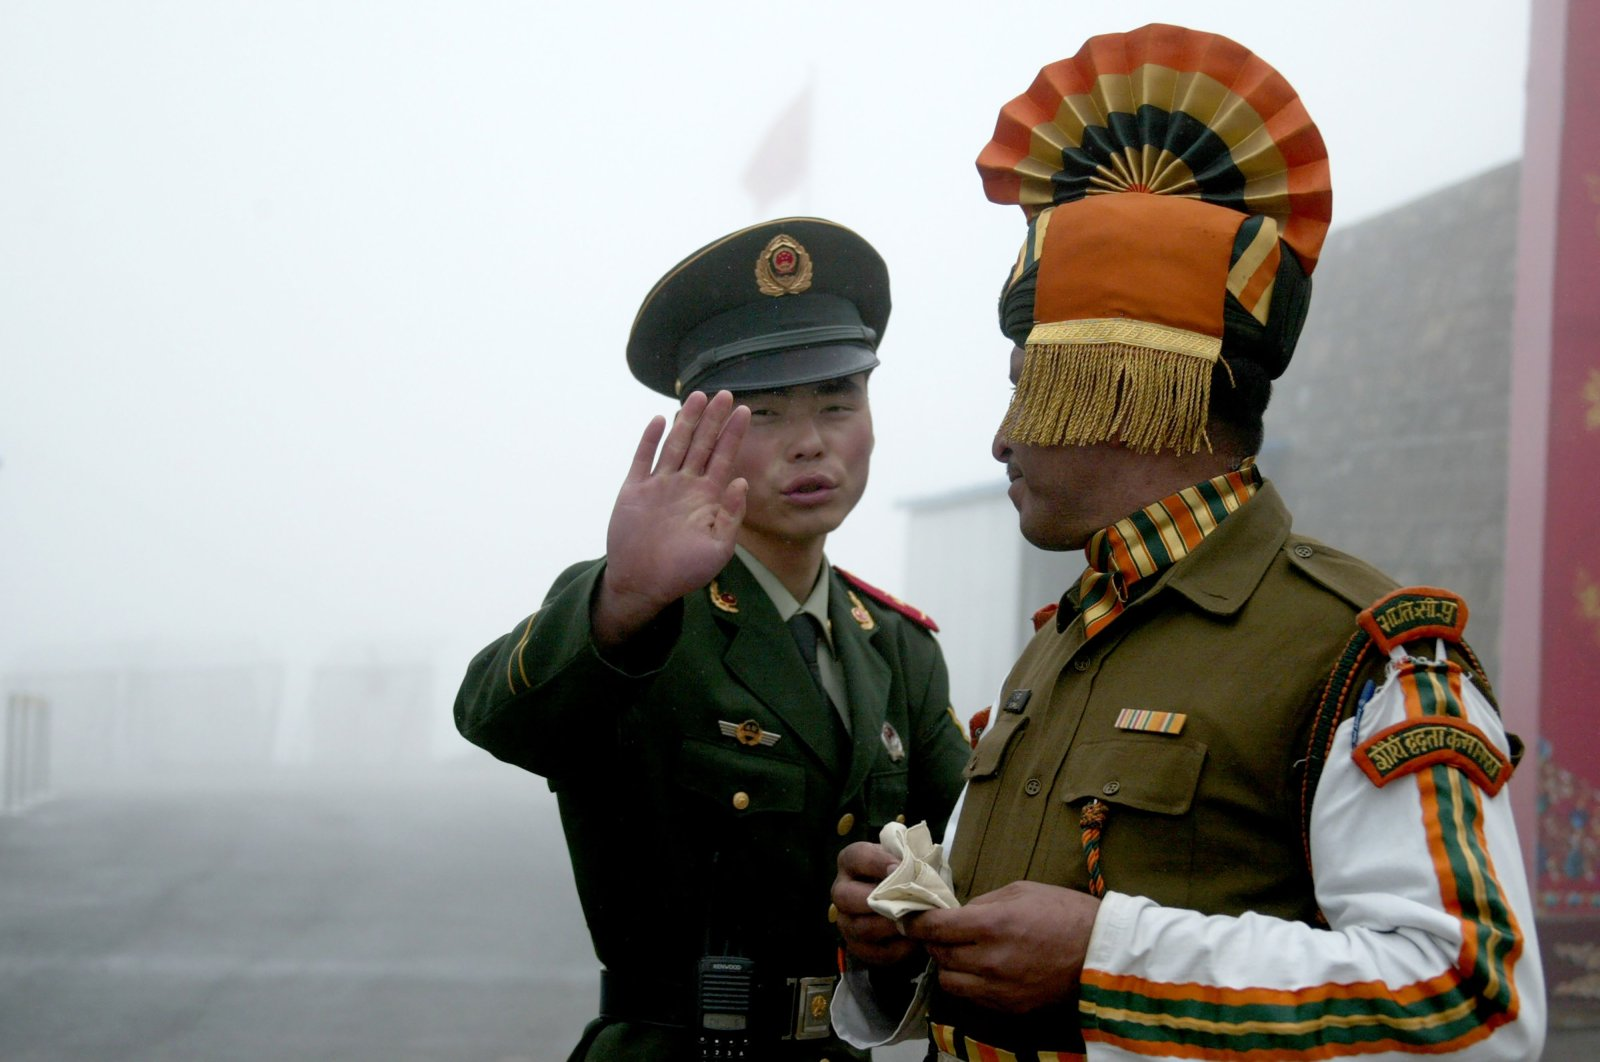 A Chinese soldier gestures as he stands near an Indian soldier on the Chinese side of the ancient Nathu La border crossing between India and China, July 10, 2008. (AFP Photo)